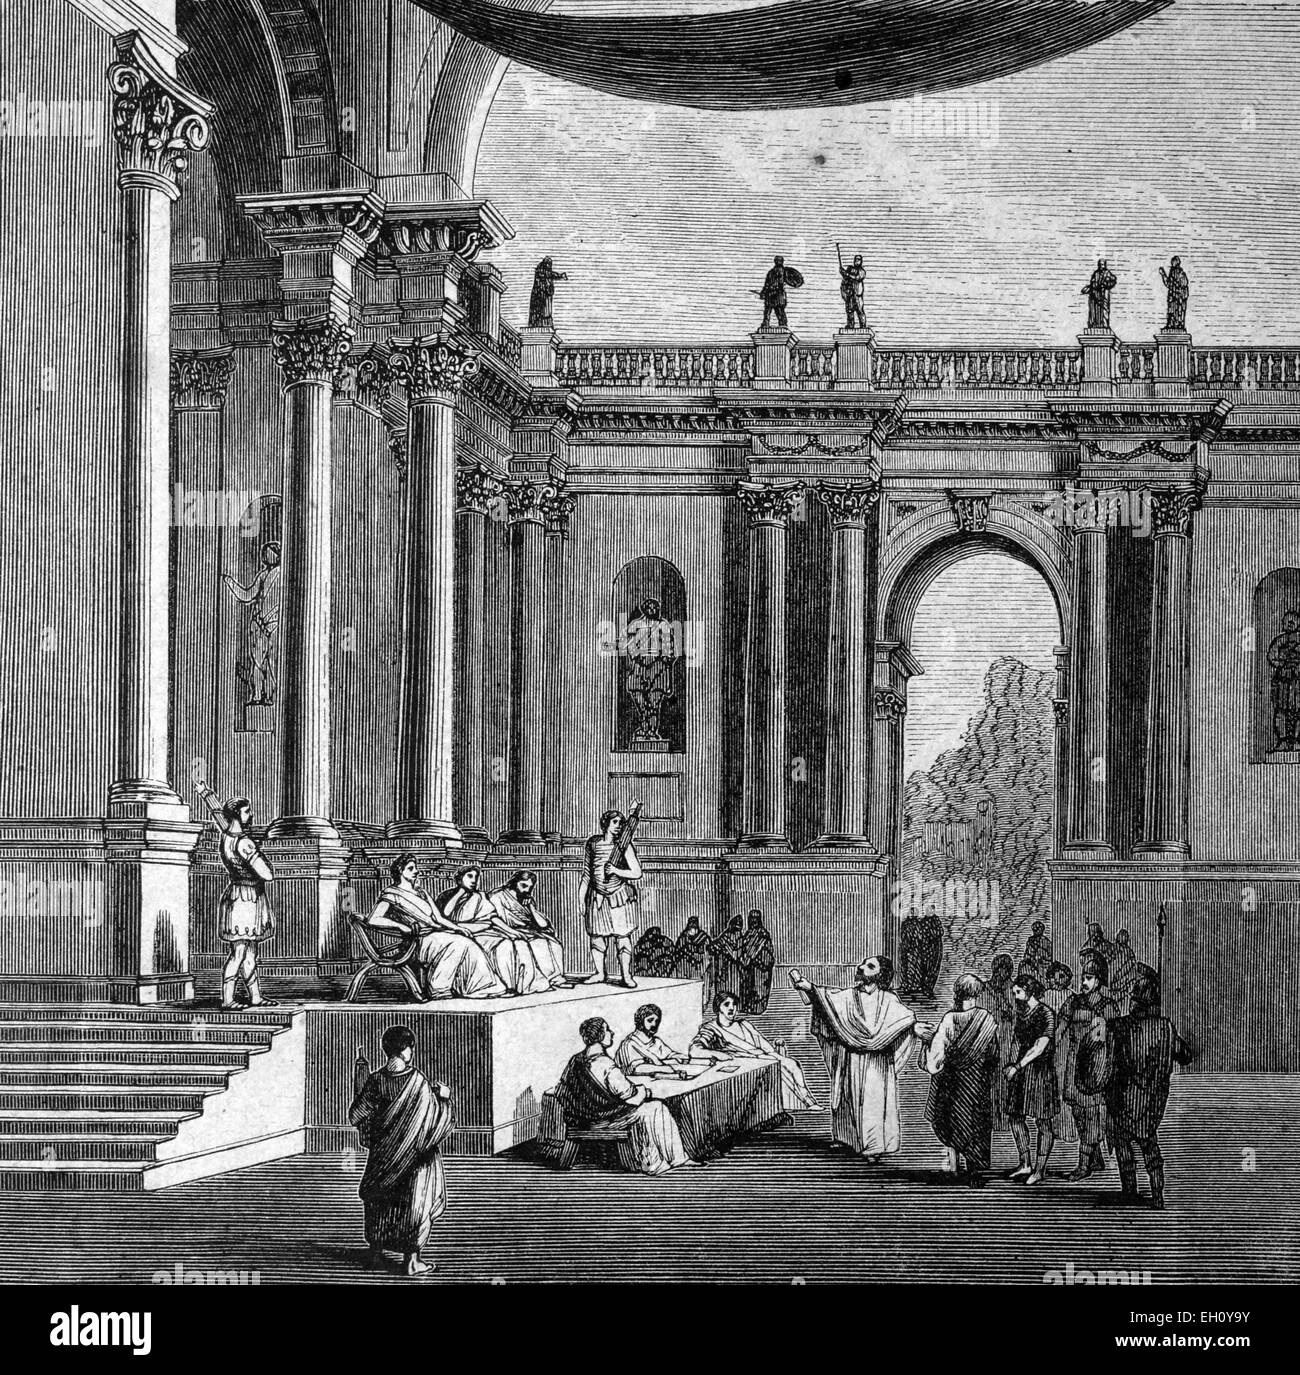 Hall of Justice in ancient Rome, Italy, historical illustration, circa 1886 - Stock Image